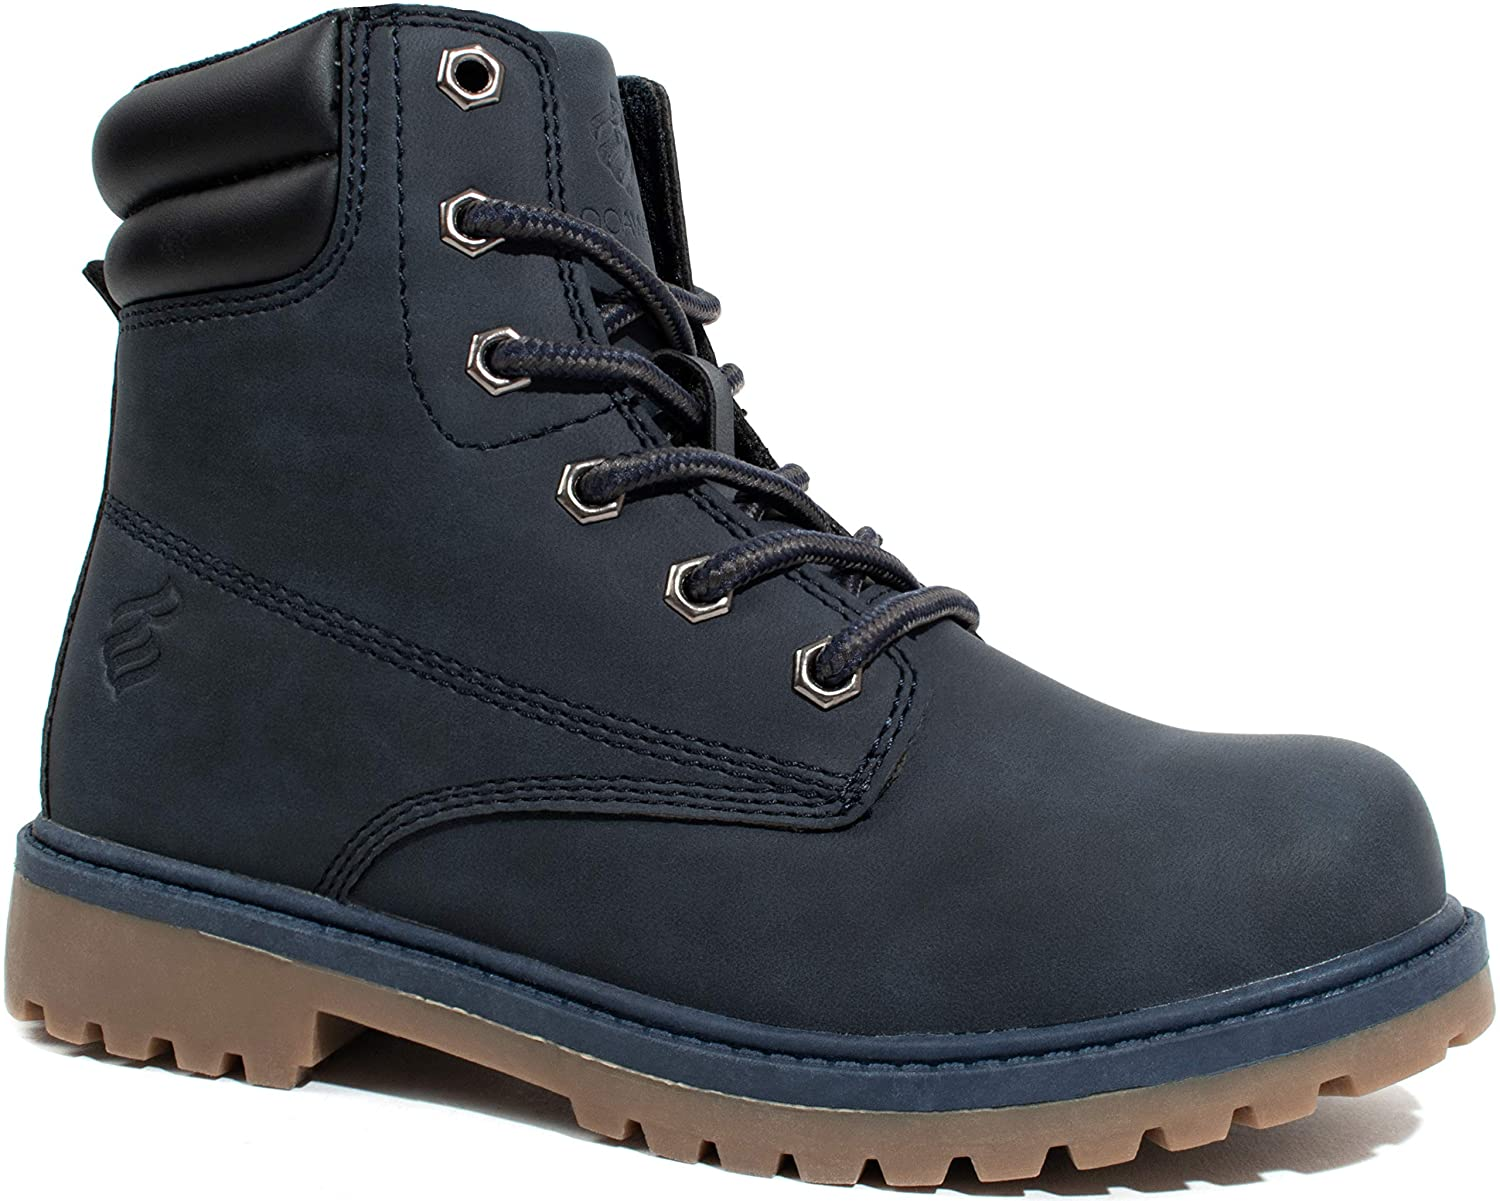 921c93c556753 Rocawear Boots for Boys, Available in Six Sizes; Stylish Boys' Boots